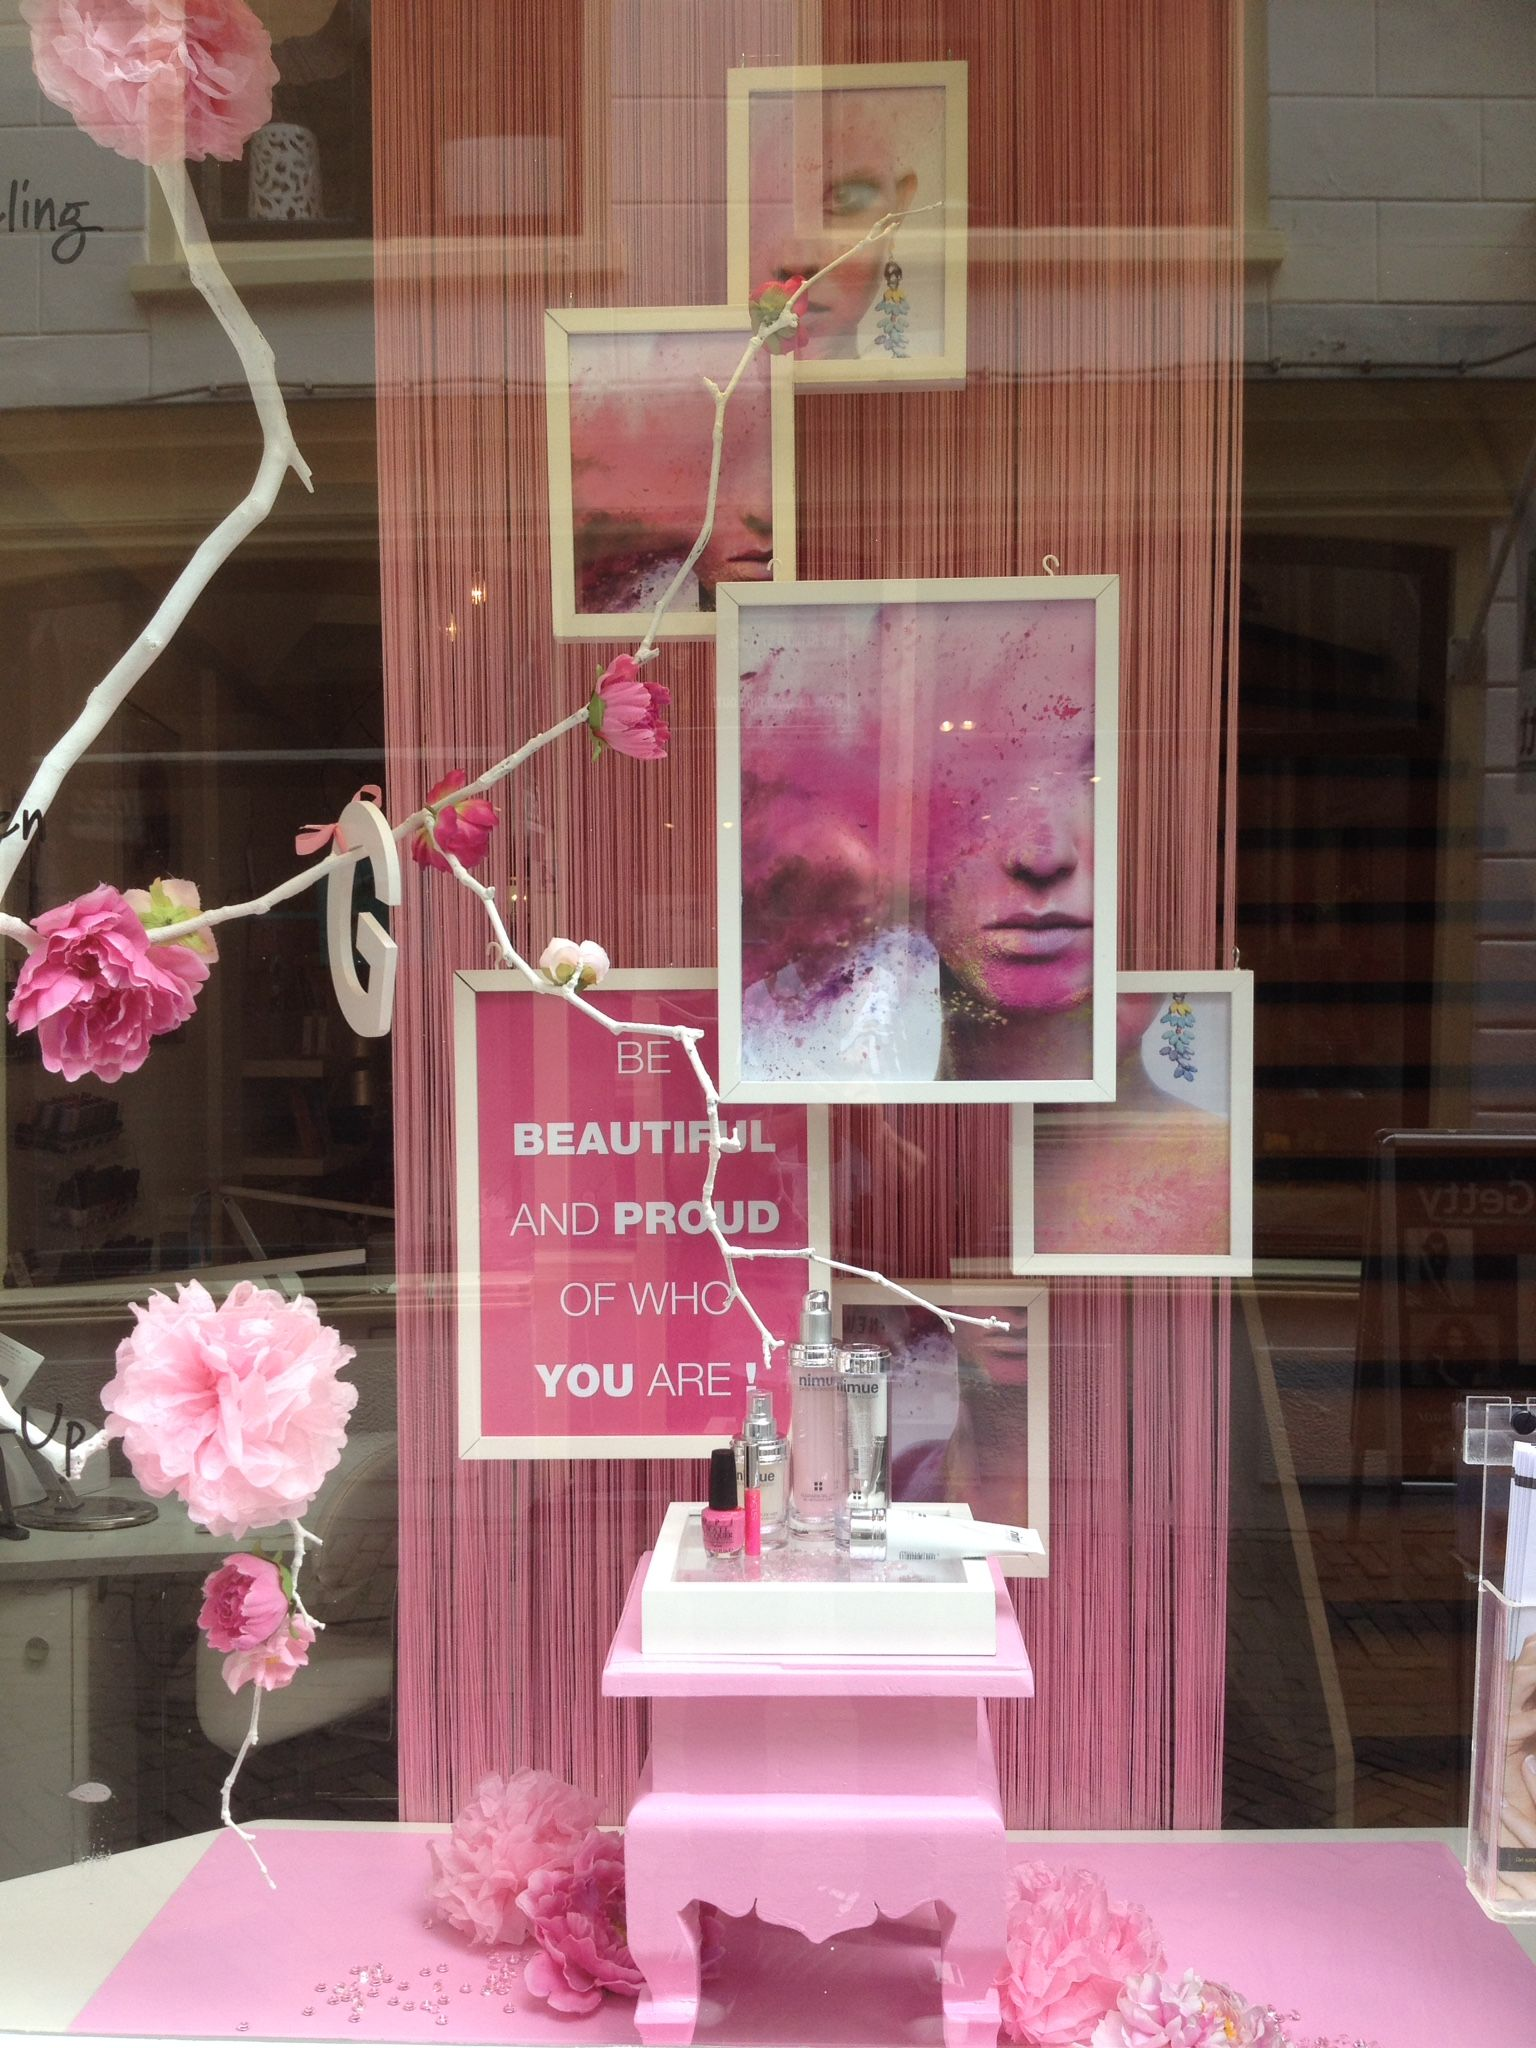 Hair Salon Window Display Ideas The Absolute Best Salon Window